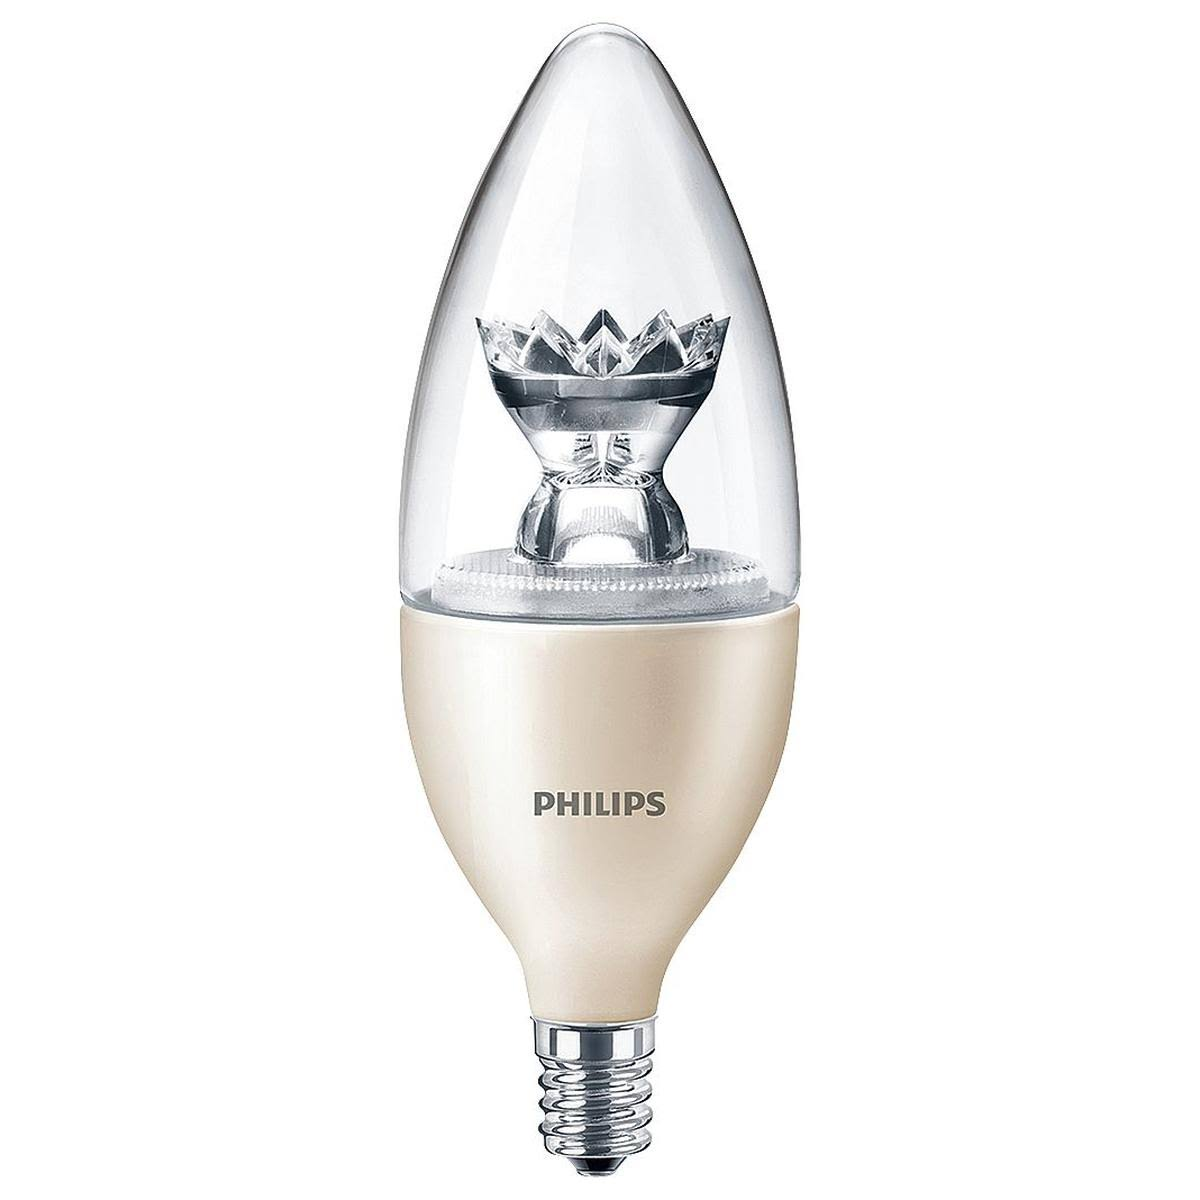 Philips E12 LED Dimmable Light Bulb - Candelabra Screw, 25W